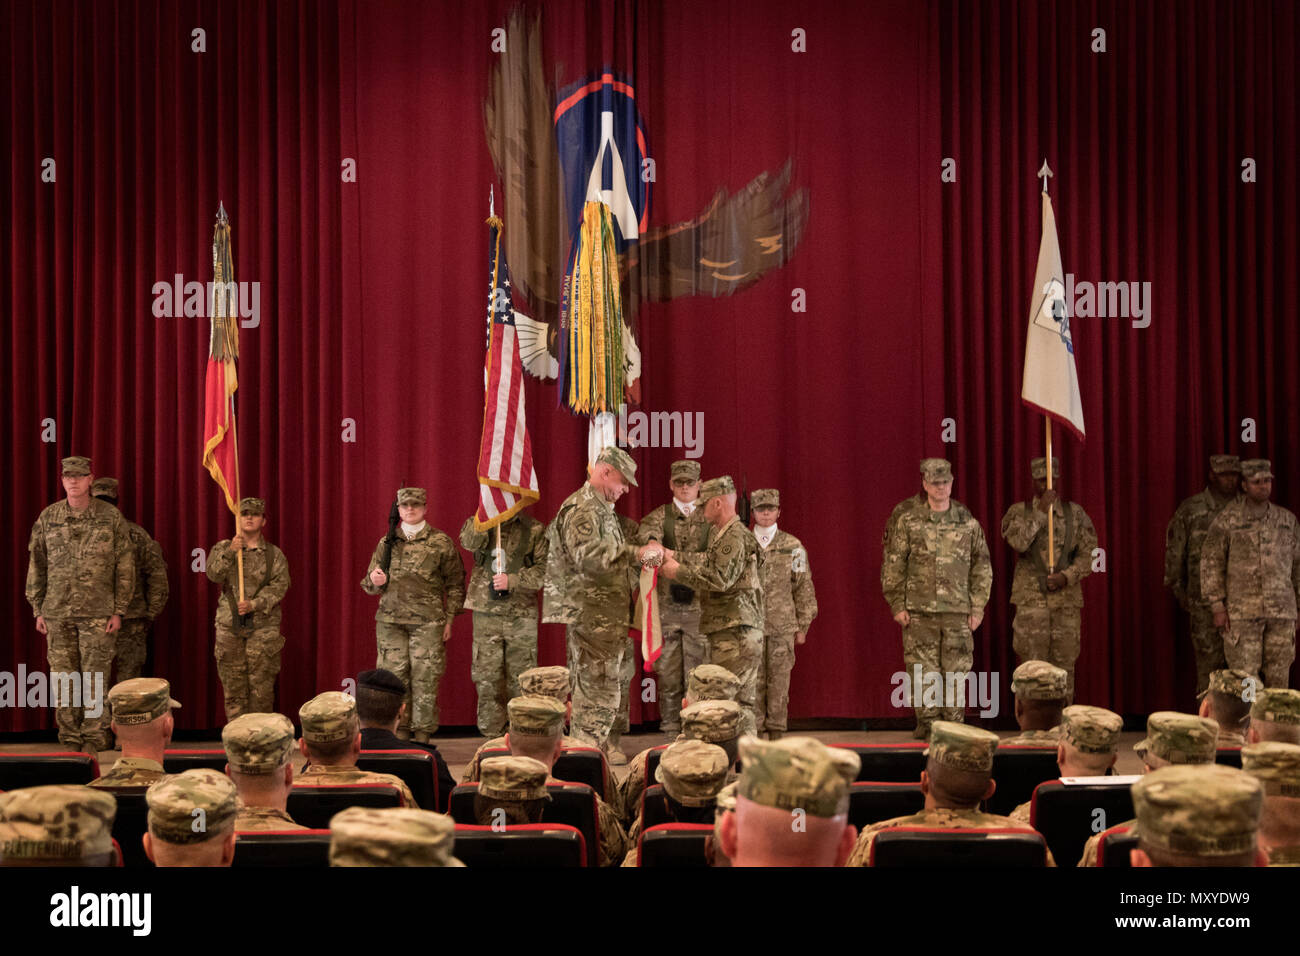 Brig. Gen. Robert Harter, the commanding general of the 316th Sustainment Command (Expeditionary), and Command Sgt. Maj. Johnny McPeek, the senior enlisted advisor of the 316th ESC, uncase their colors during their transfer of authority ceremony from the 451st ESC at Camp Arifjan, Kuwait, Dec. 23, 2016. (U.S. Army Photo by Staff Sgt. Dalton Smith) - Stock Image